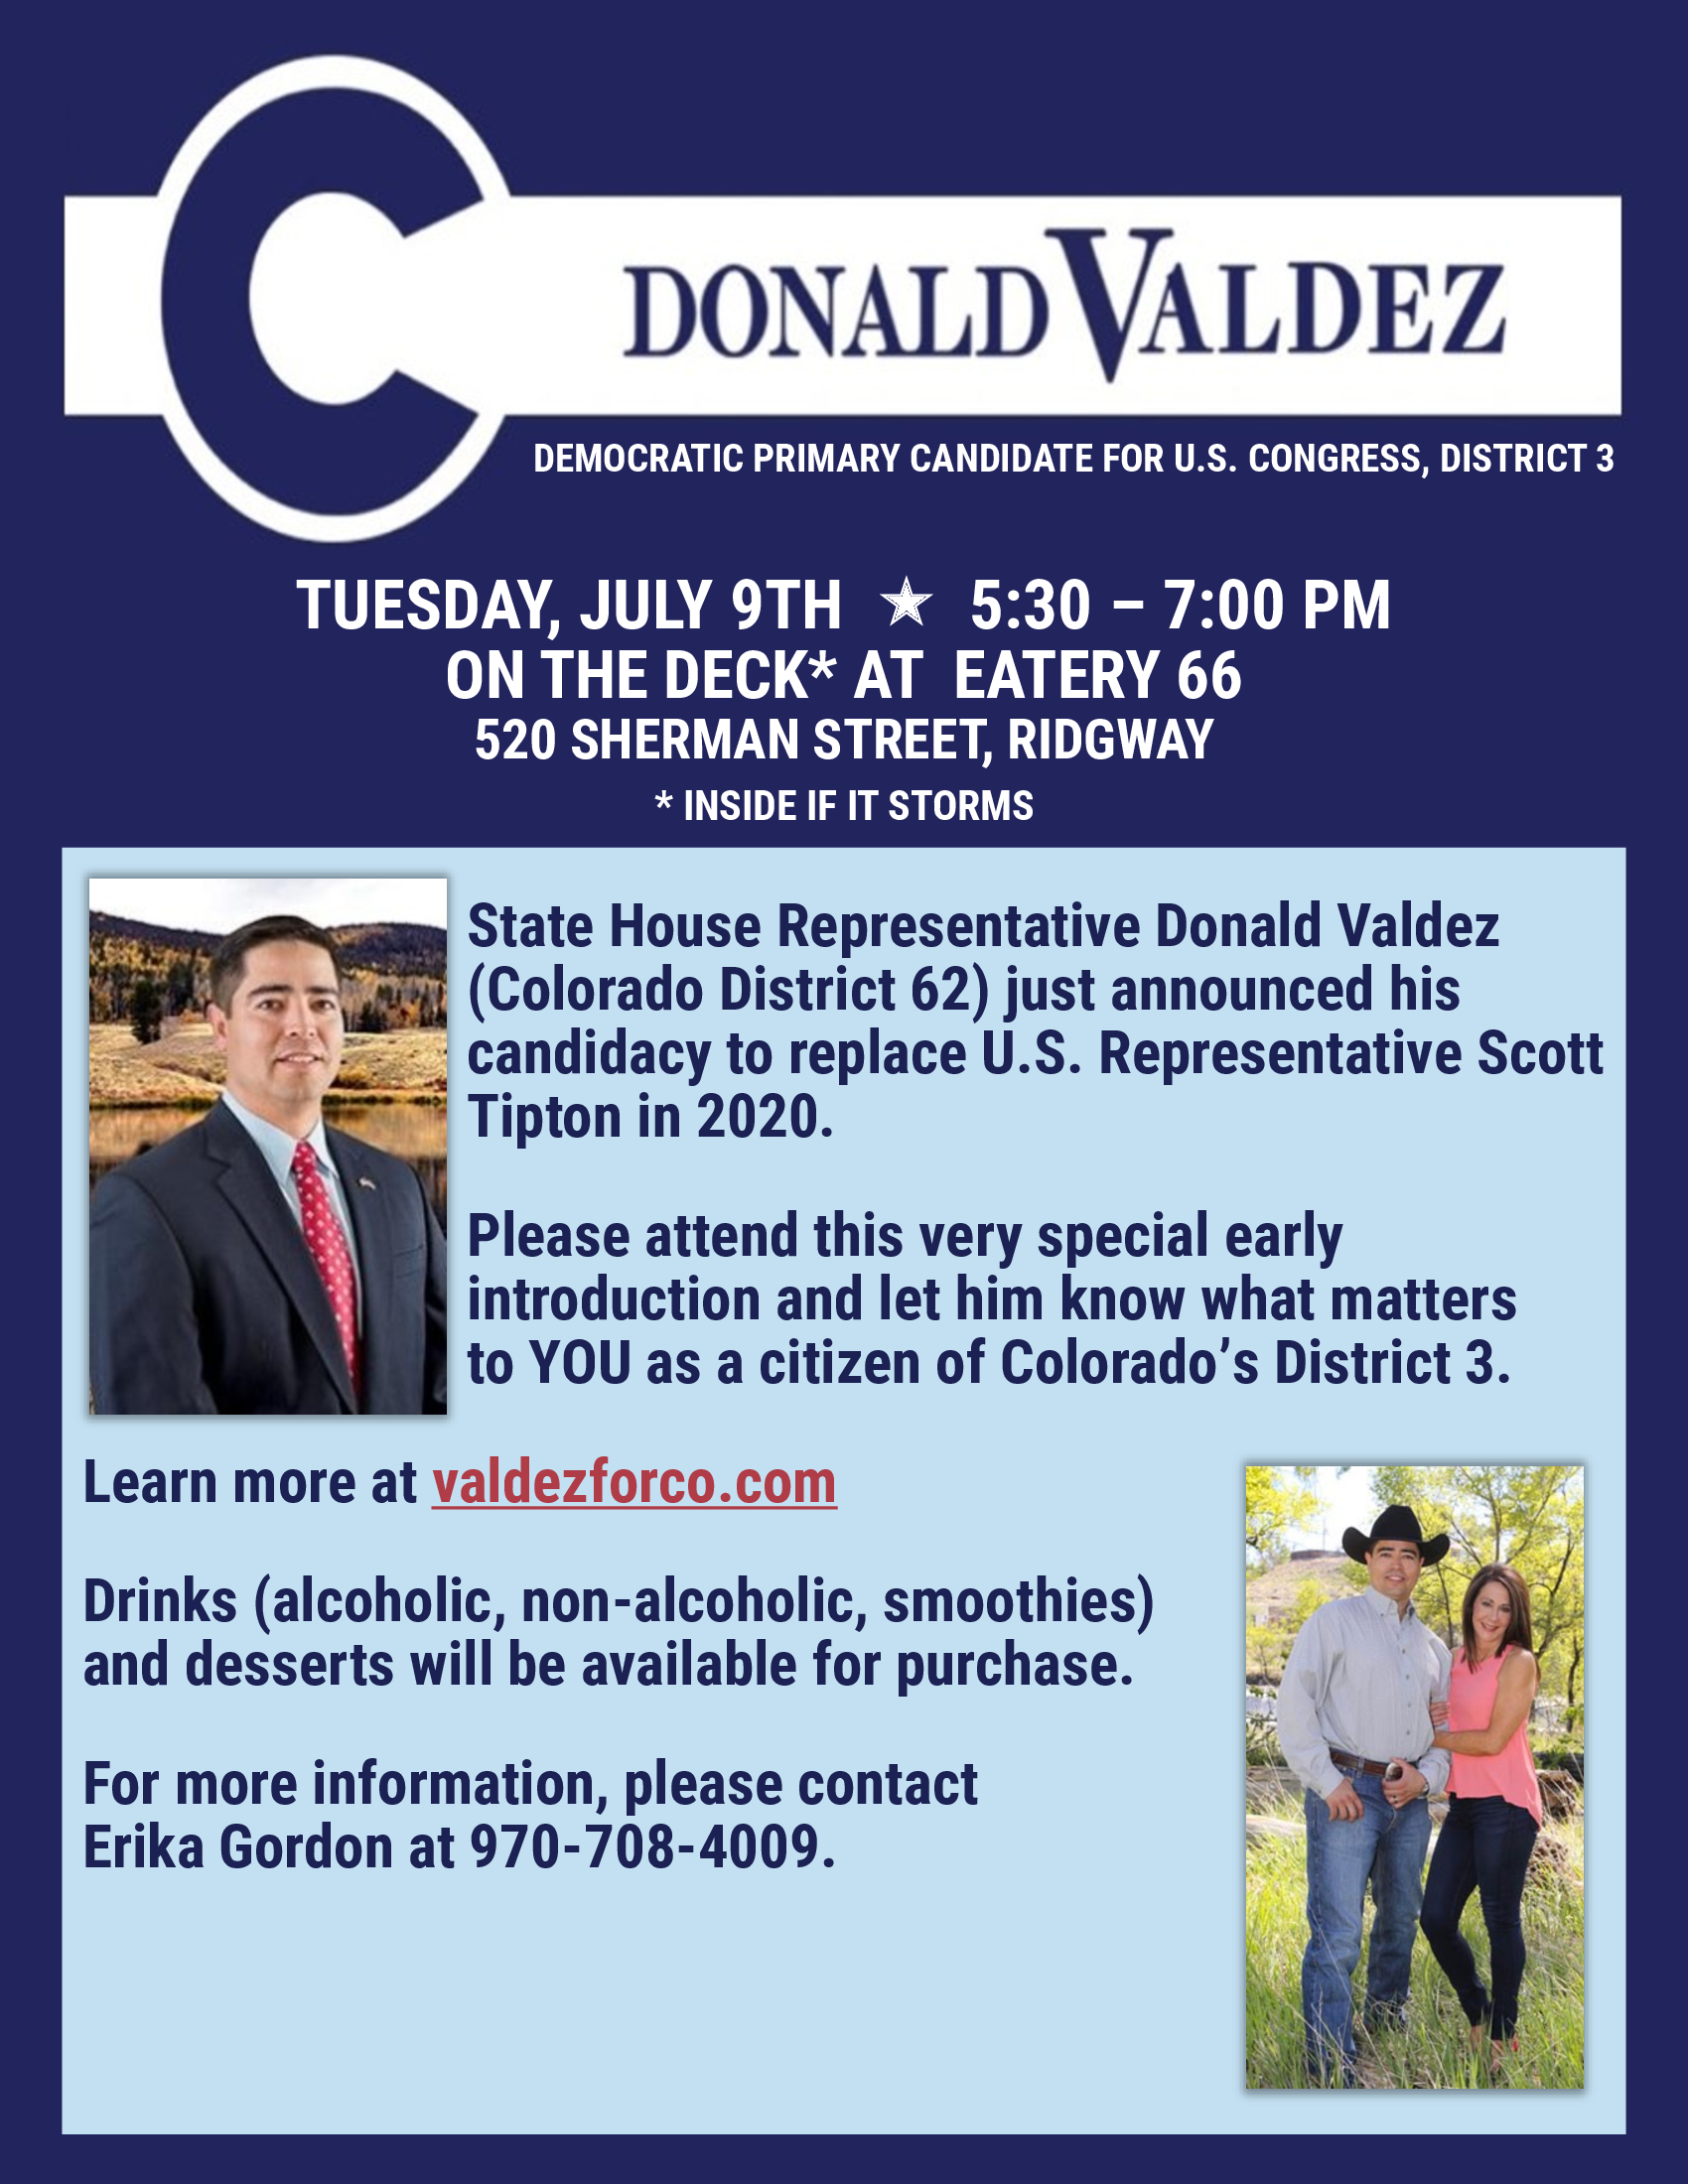 Ridgway Meet and Greet | Tuesday, July 9